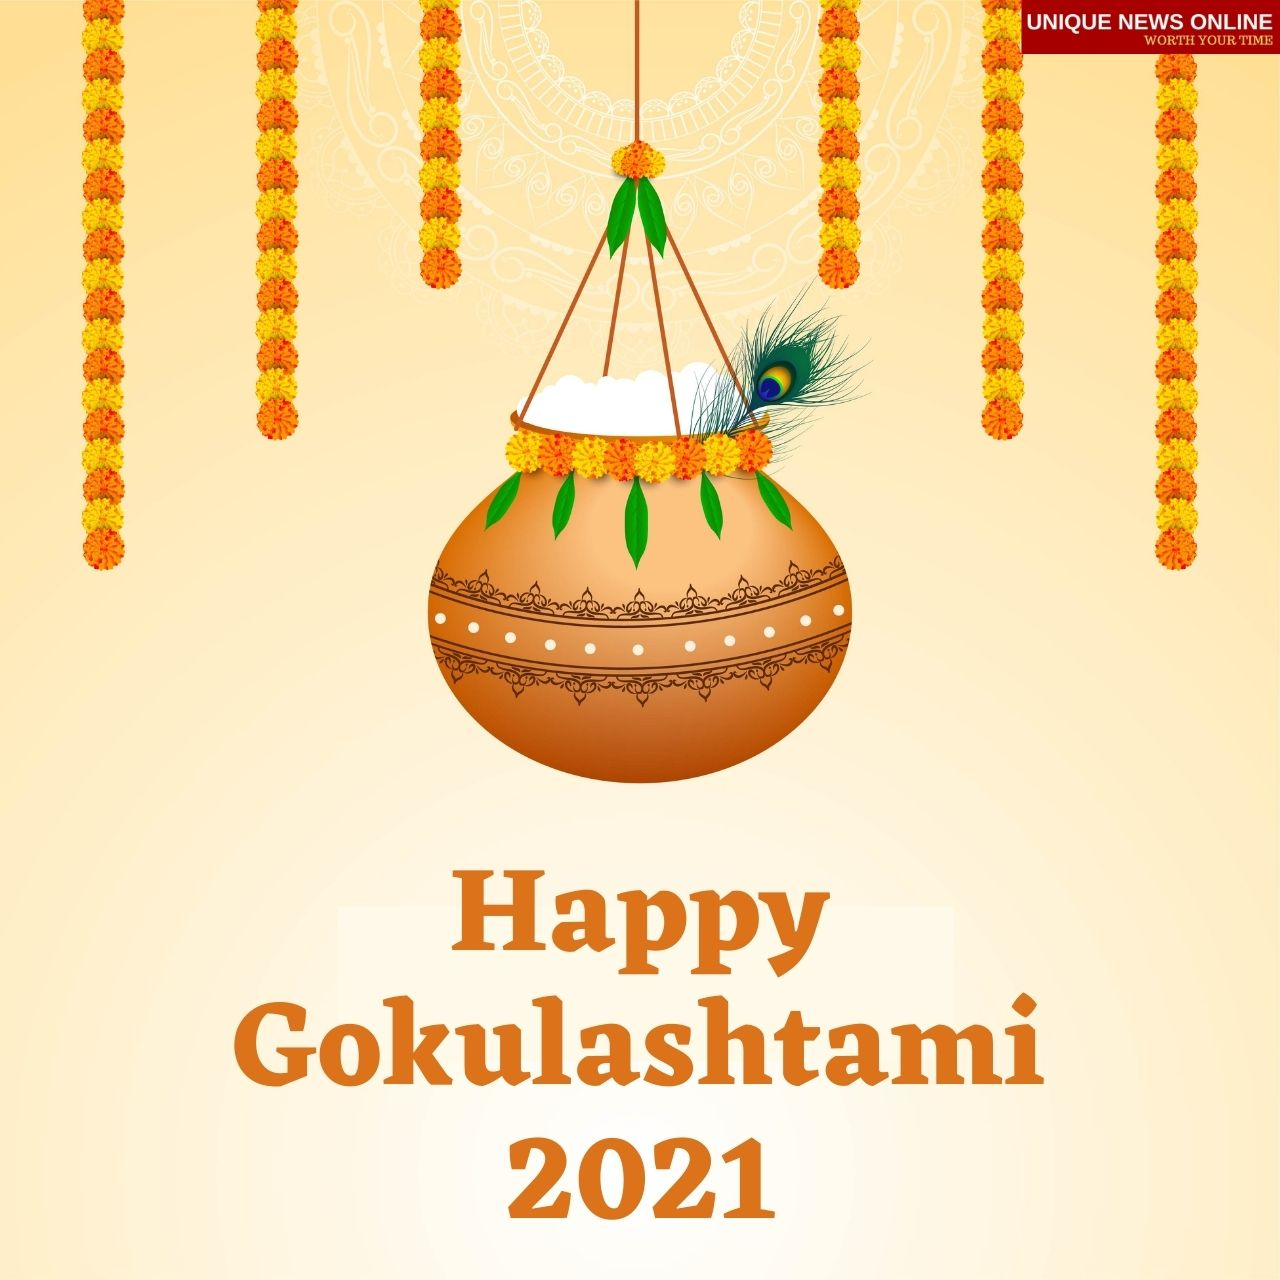 Happy Gokulashtami 2021 Wishes, HD Images, Messages, Quotes, WhatsApp SMS, and Facebook Status